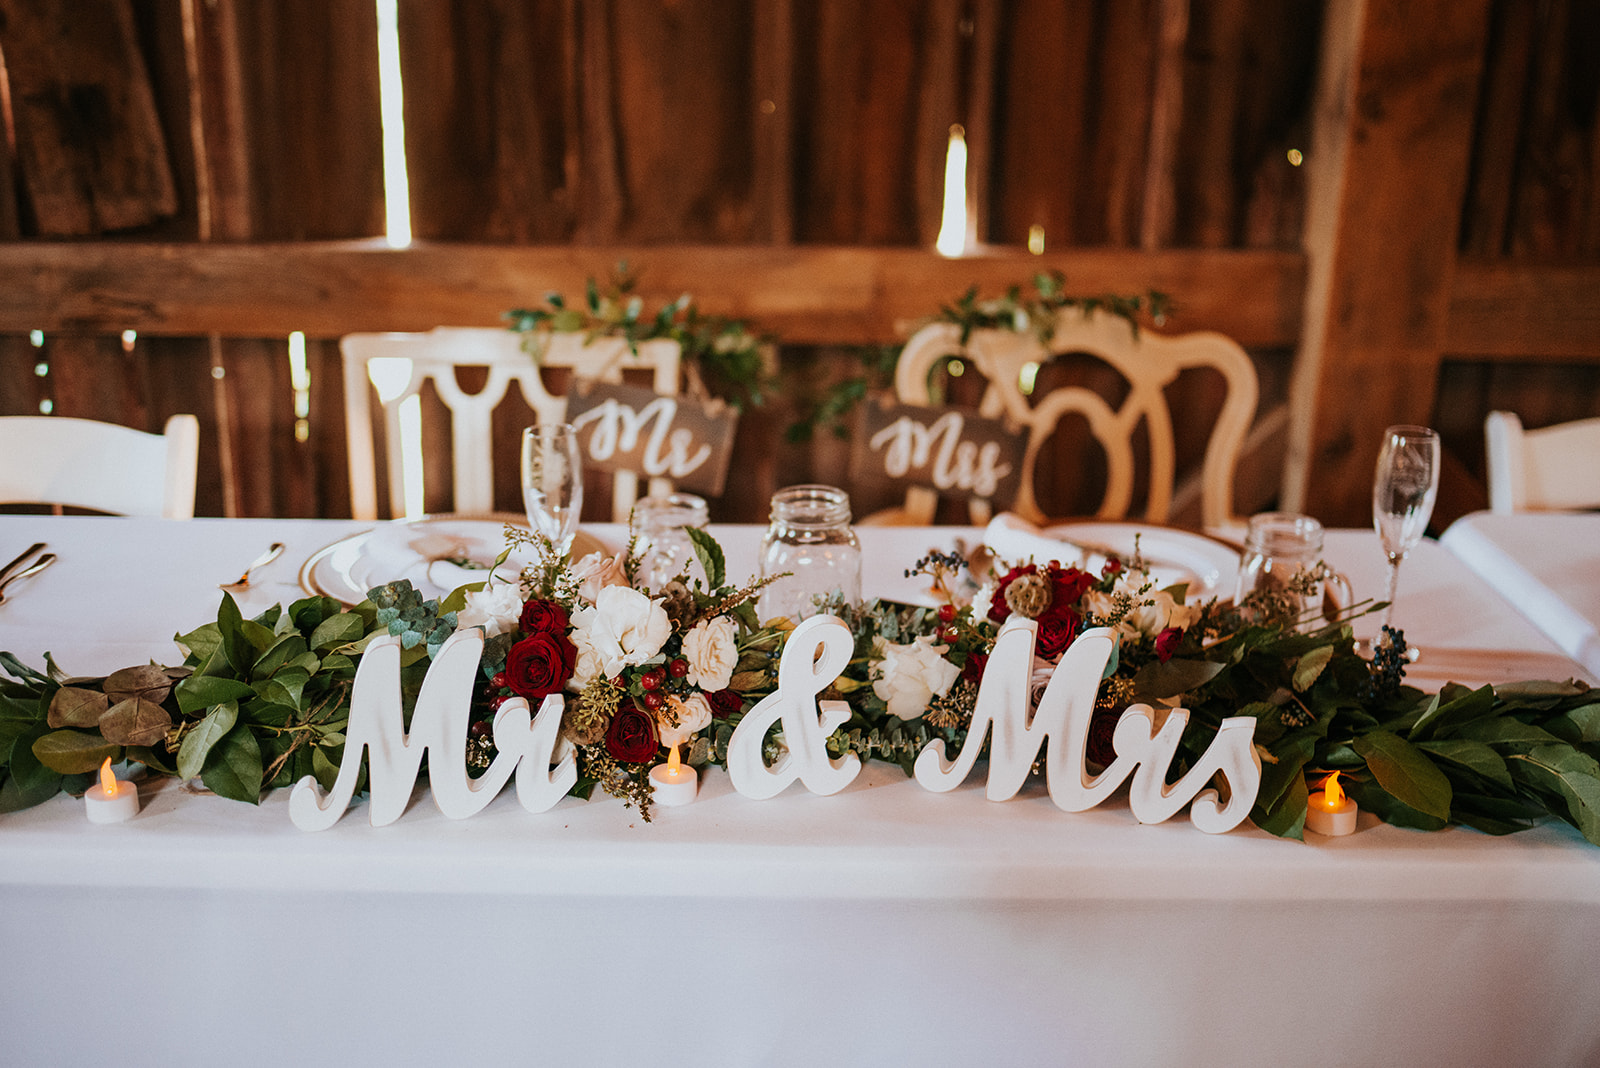 overthevineswisconsinwedding_1065.jpg